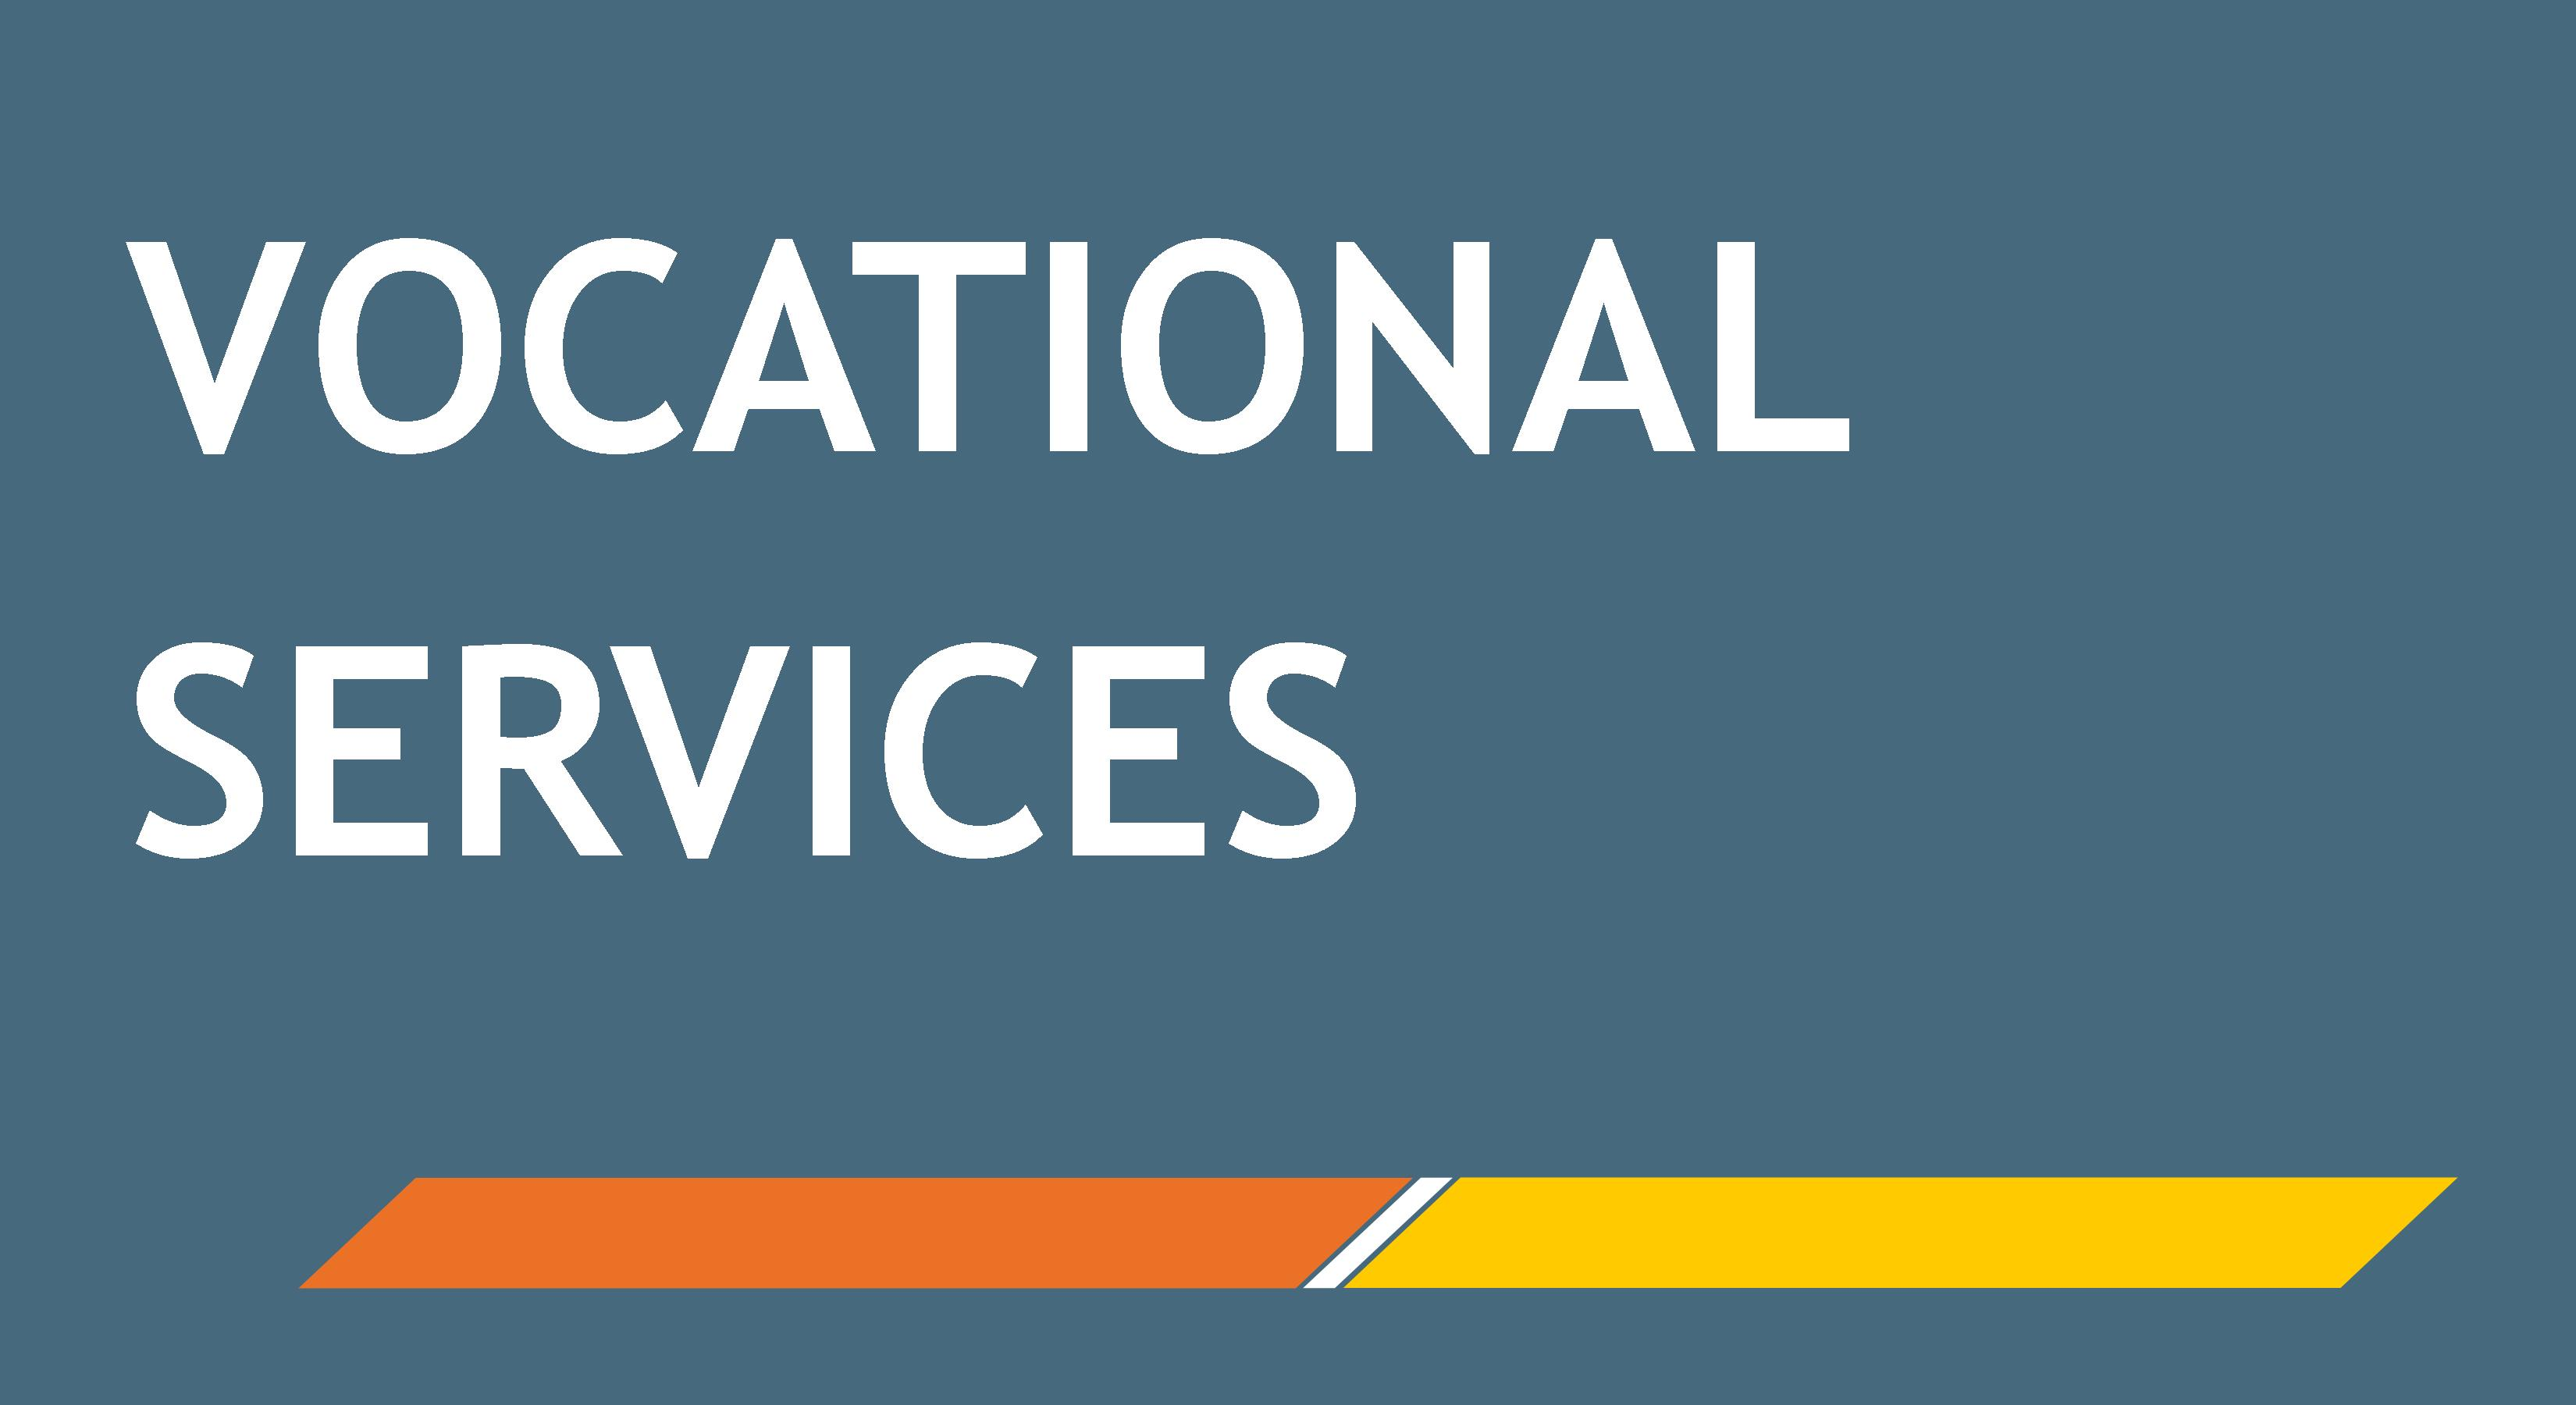 Vocational Services Employment For People With